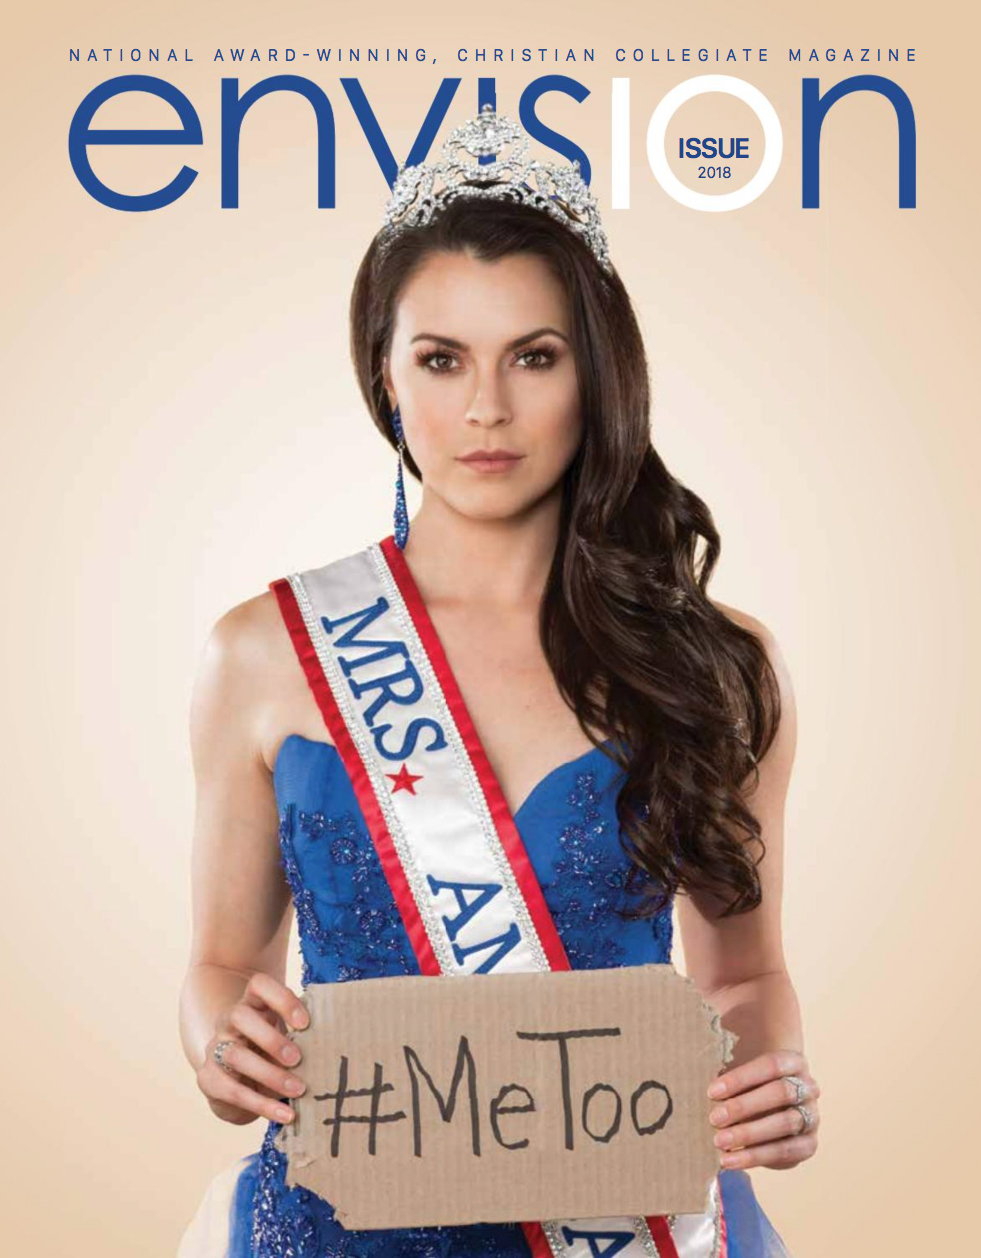 81% of women surveyed say they have experienced sexual harassment.Mrs. America 2018 Mekayla Fawn Eppers sits down with the Envision team to discuss her own experience & the #MeToo movement. -